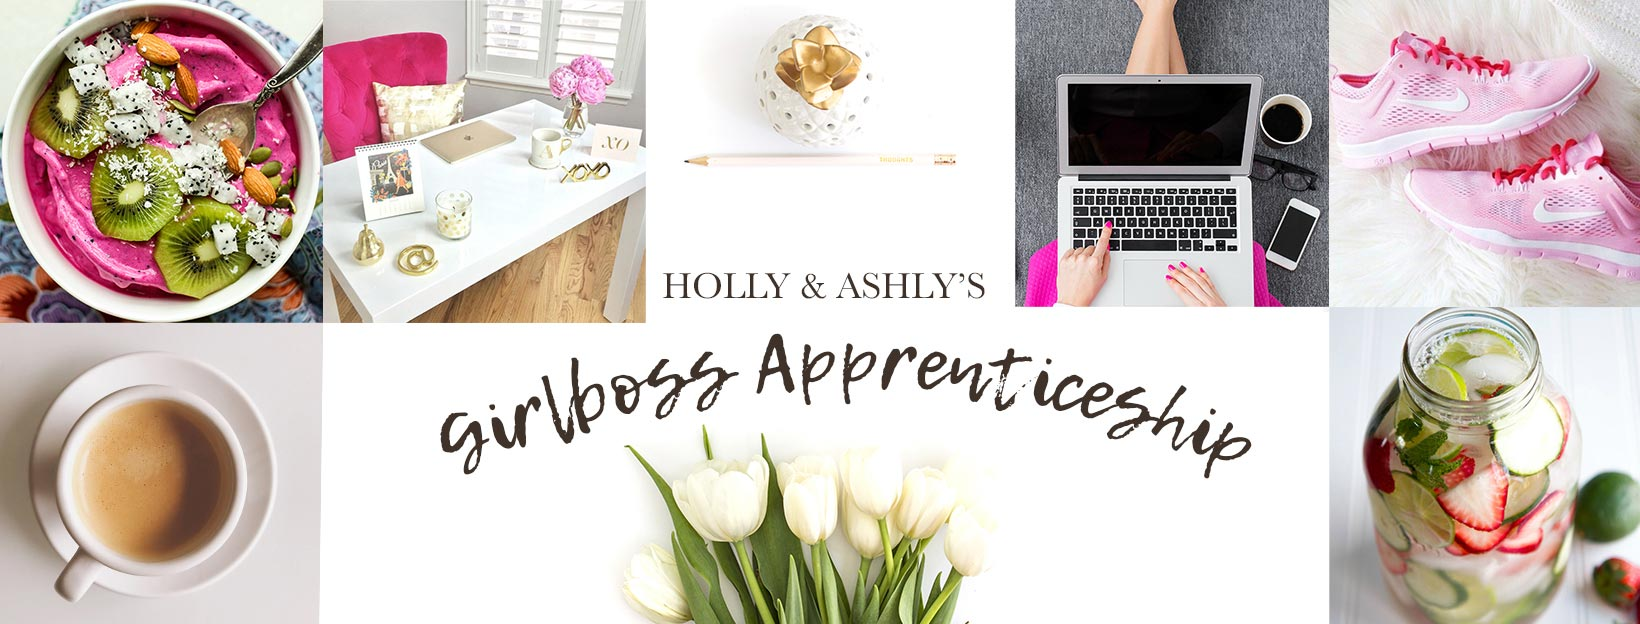 girlboss-apprenticeship-holly-ashly.jpg